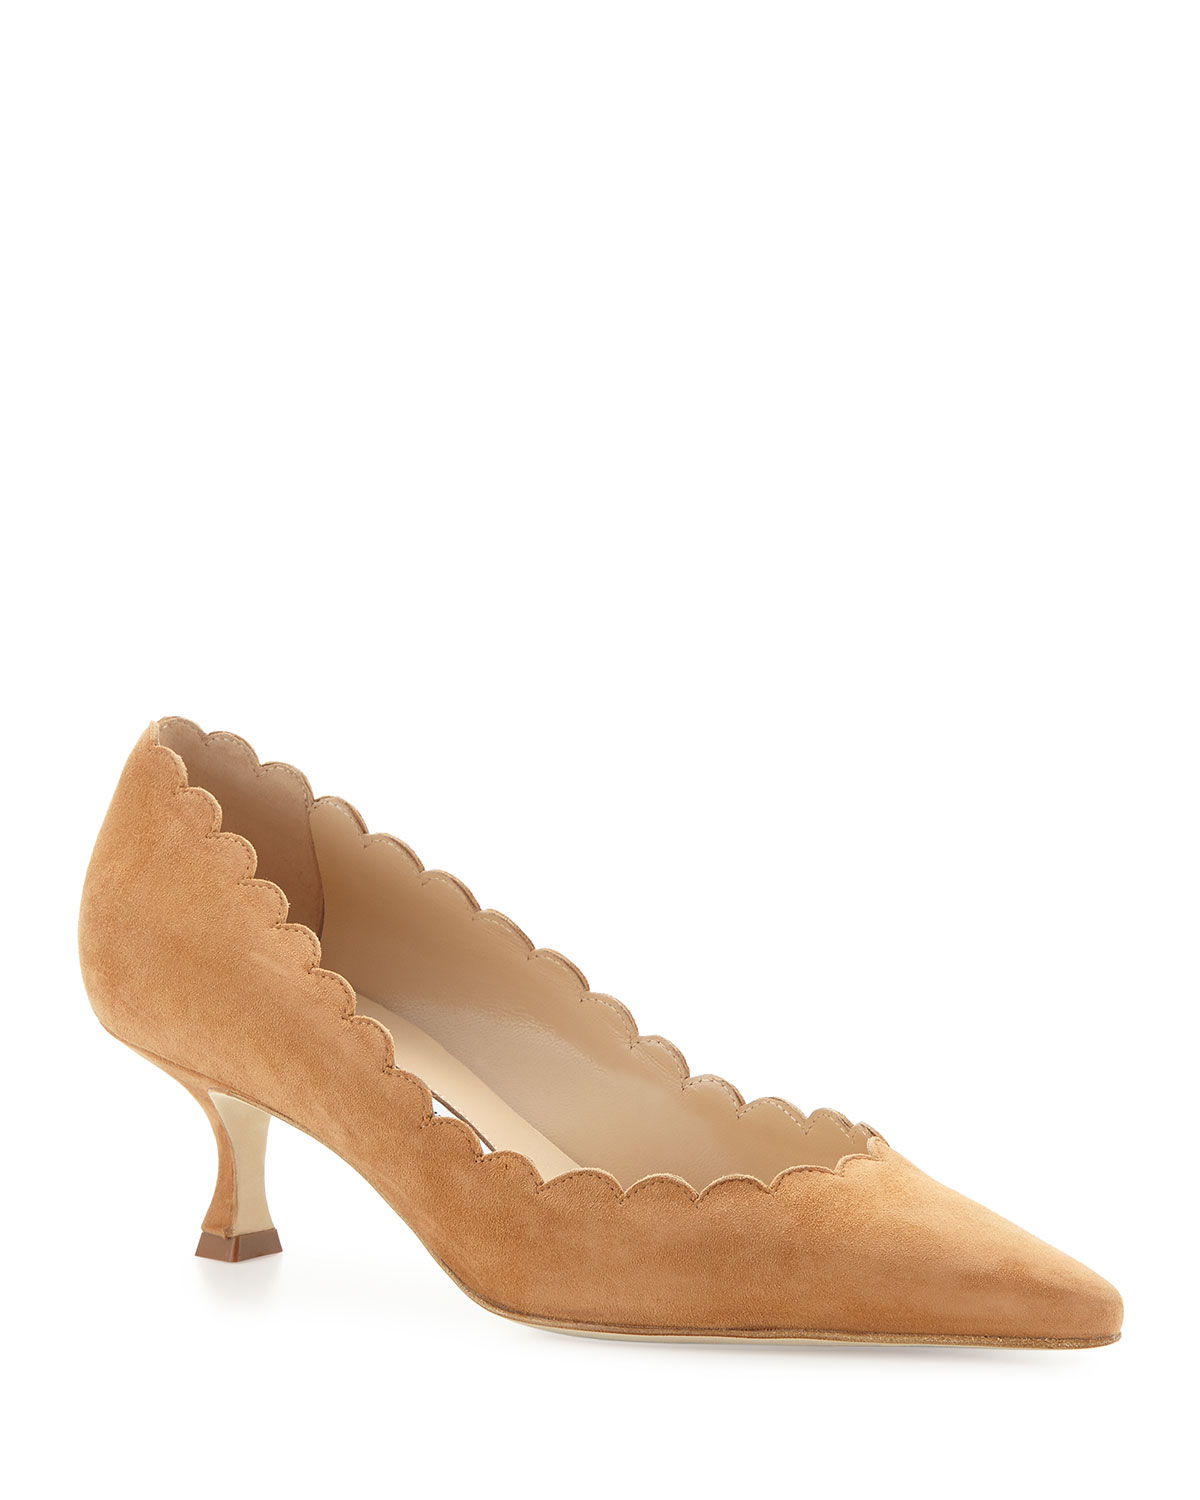 Manolo Blahnik Srilasca Scalloped Suede Kitten-Heel Pump